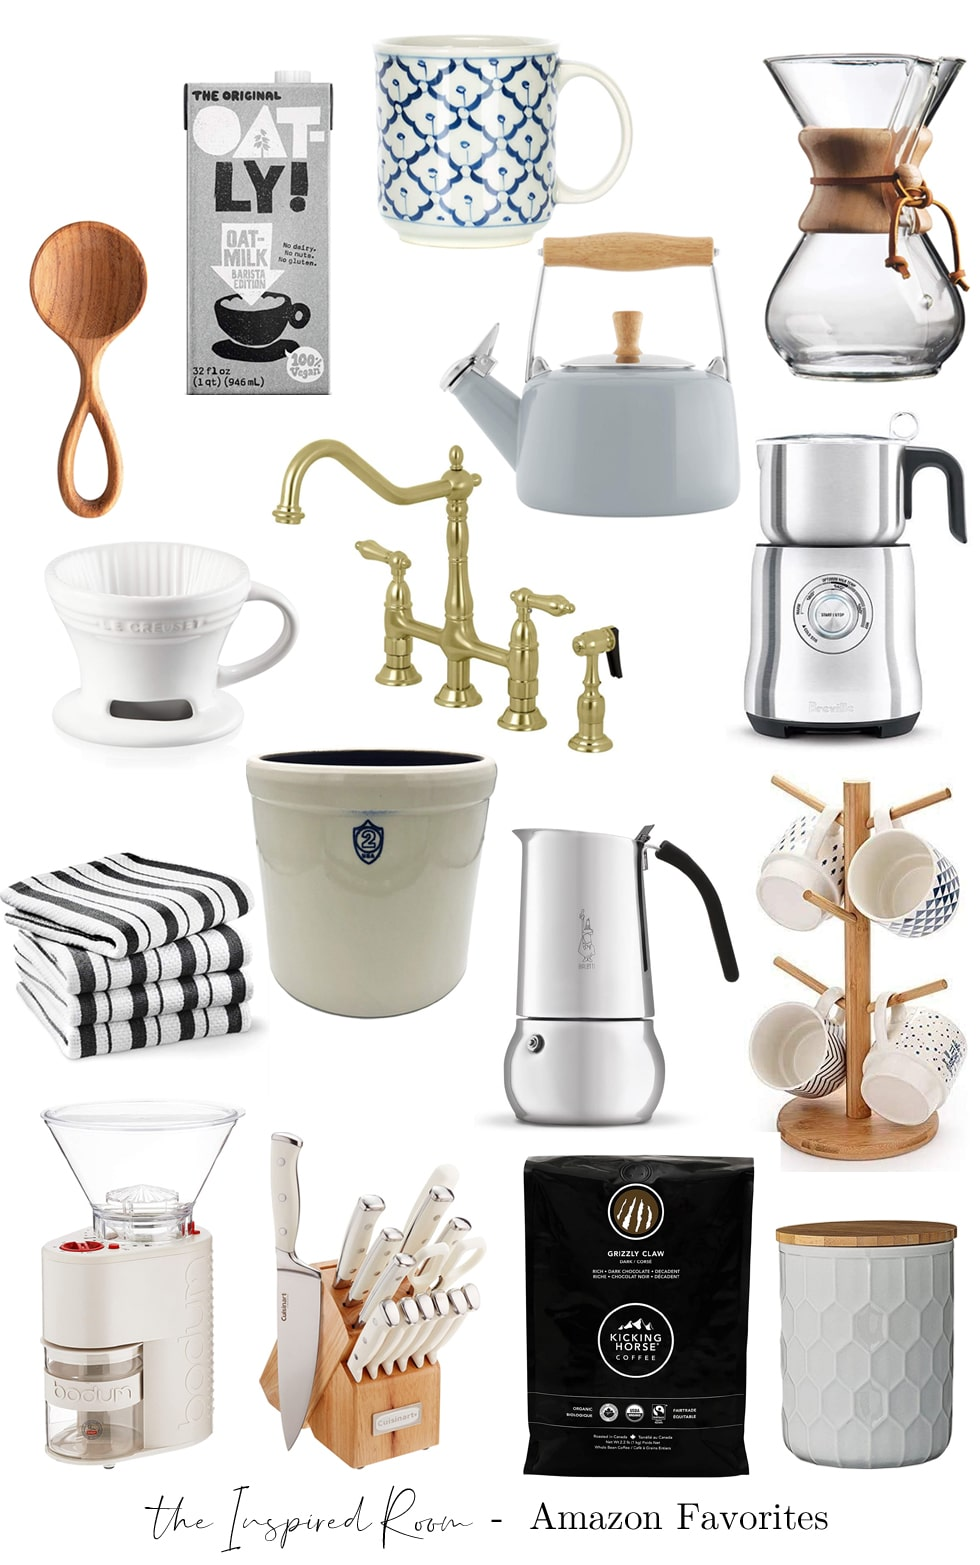 My Favorite Coffee Making Sources (Mugs, Milk Frother, Brewers and More)